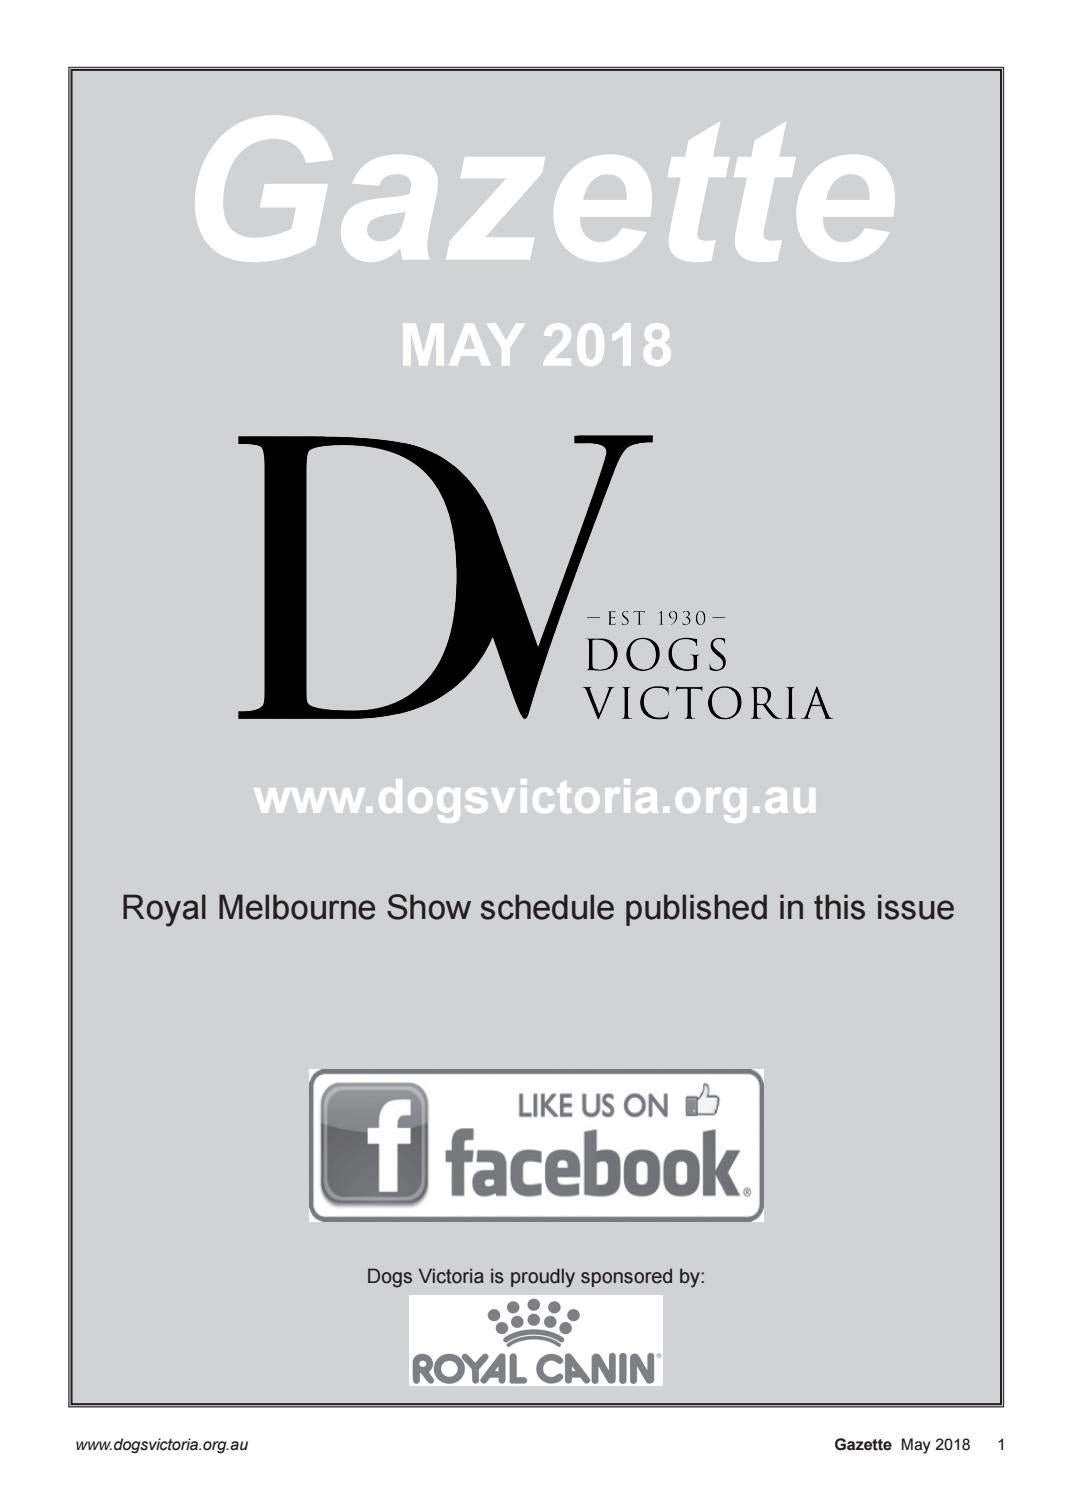 Dogs Victoria Gazette - May 2018 by Dogs Victoria - issuu